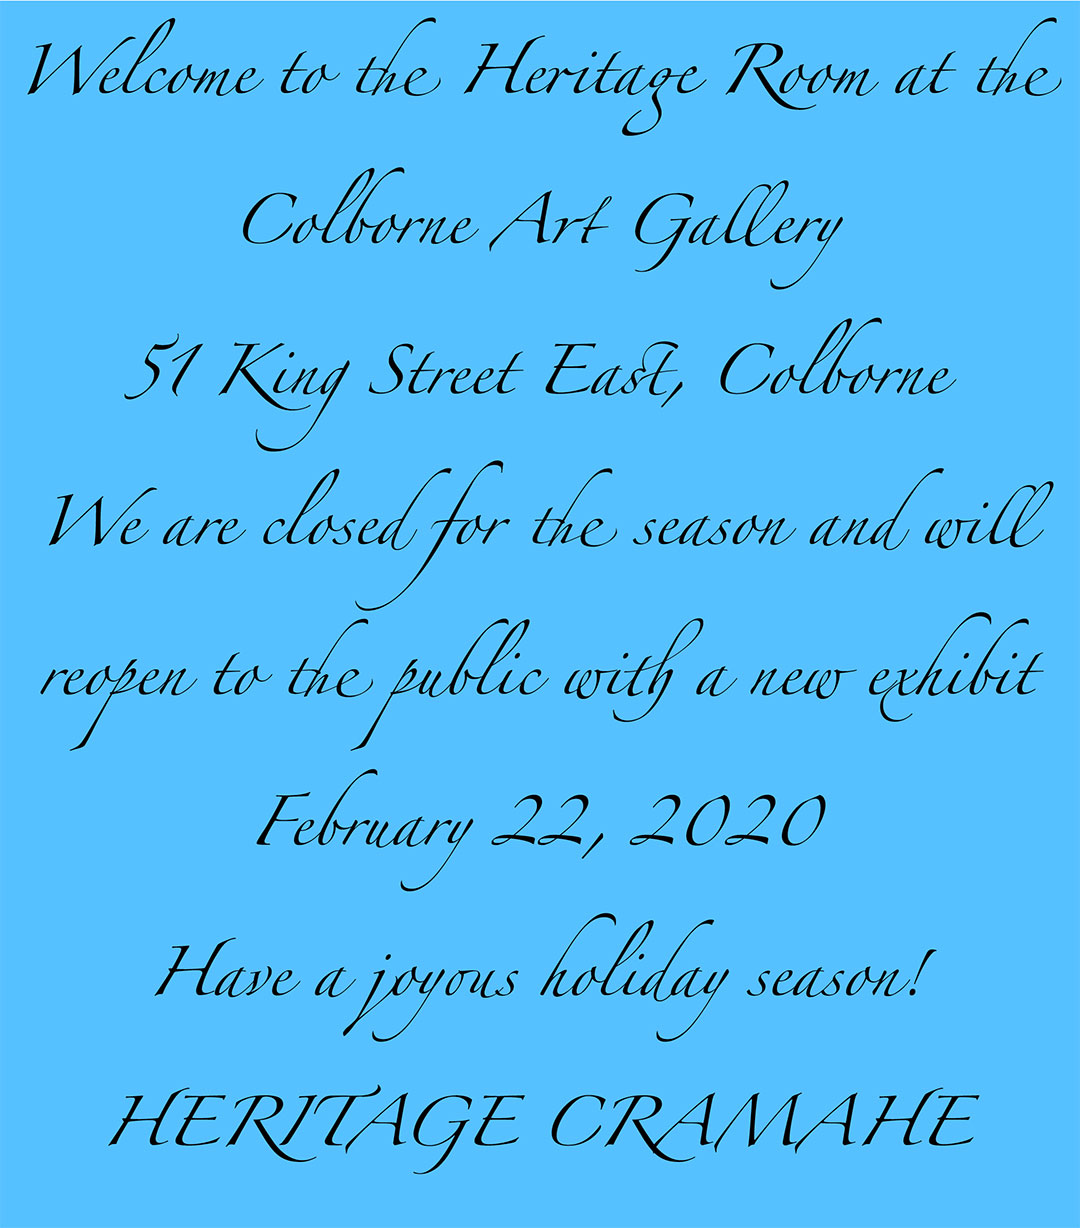 Welcome to the Heritage Room at the Colborne Art Gallery, 51 King Street East Colborne. We are closed for the season and will reopen to the public with a new exhibit February 22, 2020. Have a joyous holiday season! -- Heritage Cramahe